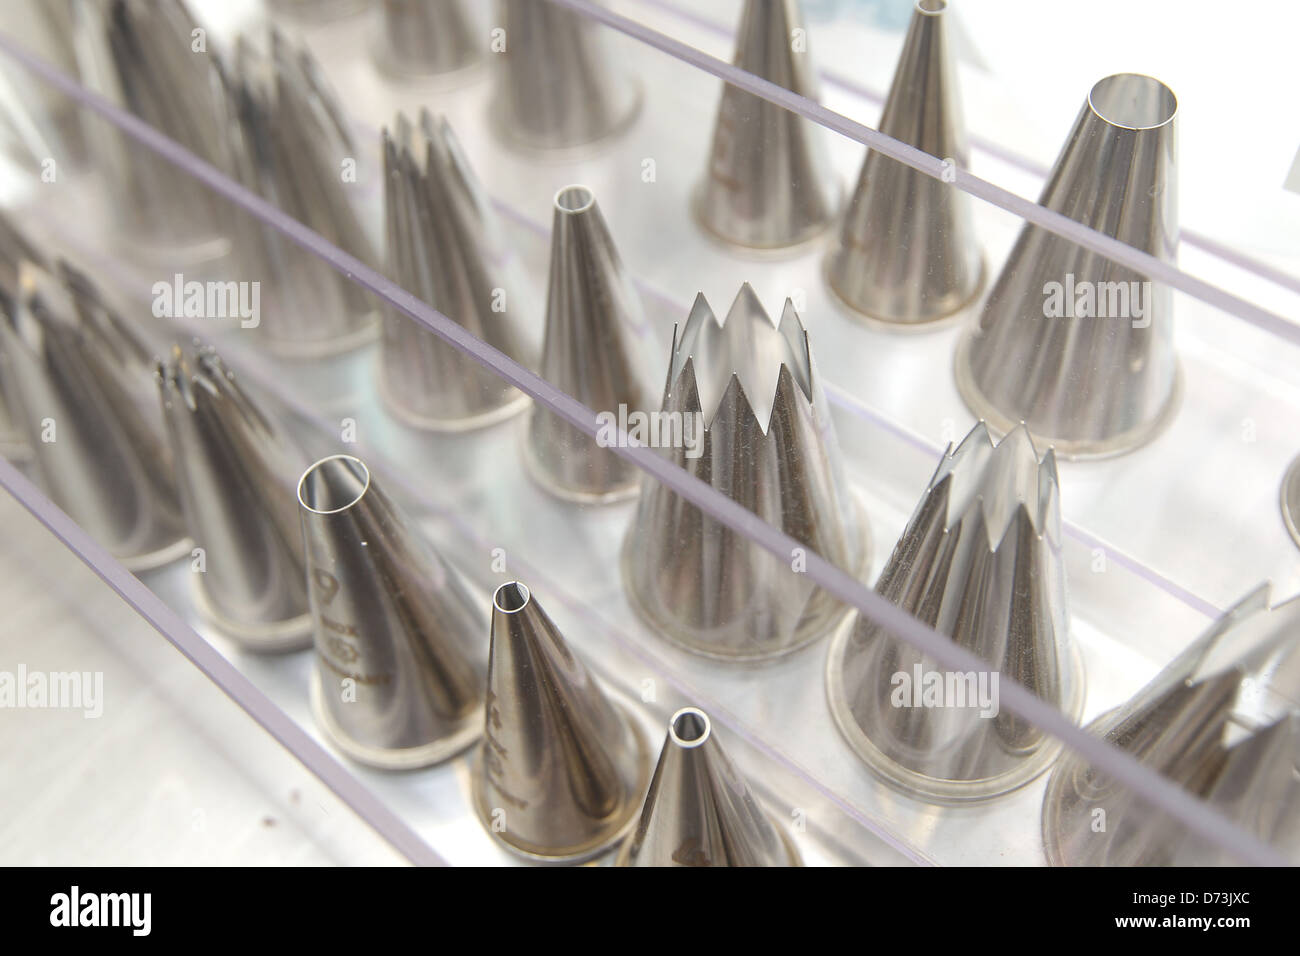 Handewitt, Germany, various Nozzles in the chocolate factory Stock Photo